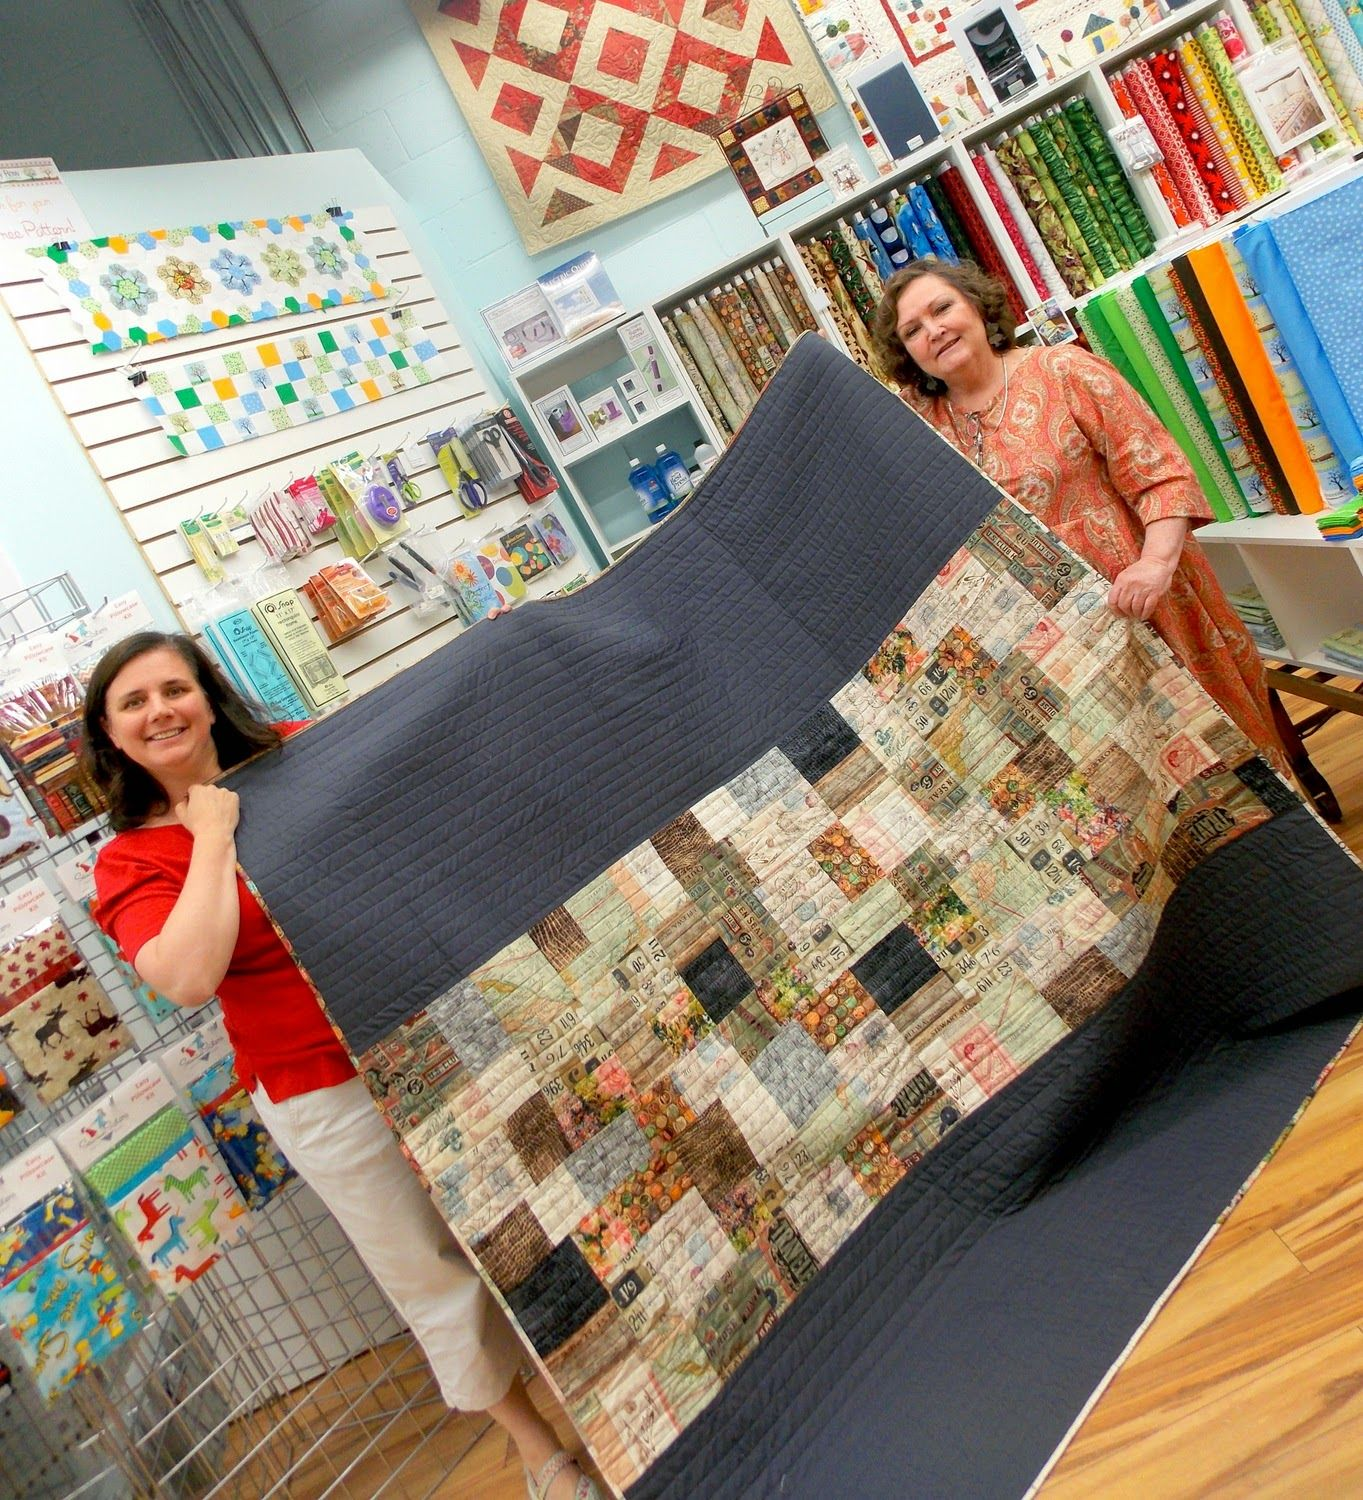 Sew Sisters Quilt Shop: July 2014 | Quilting | Pinterest ... : sew sisters quilt shop - Adamdwight.com